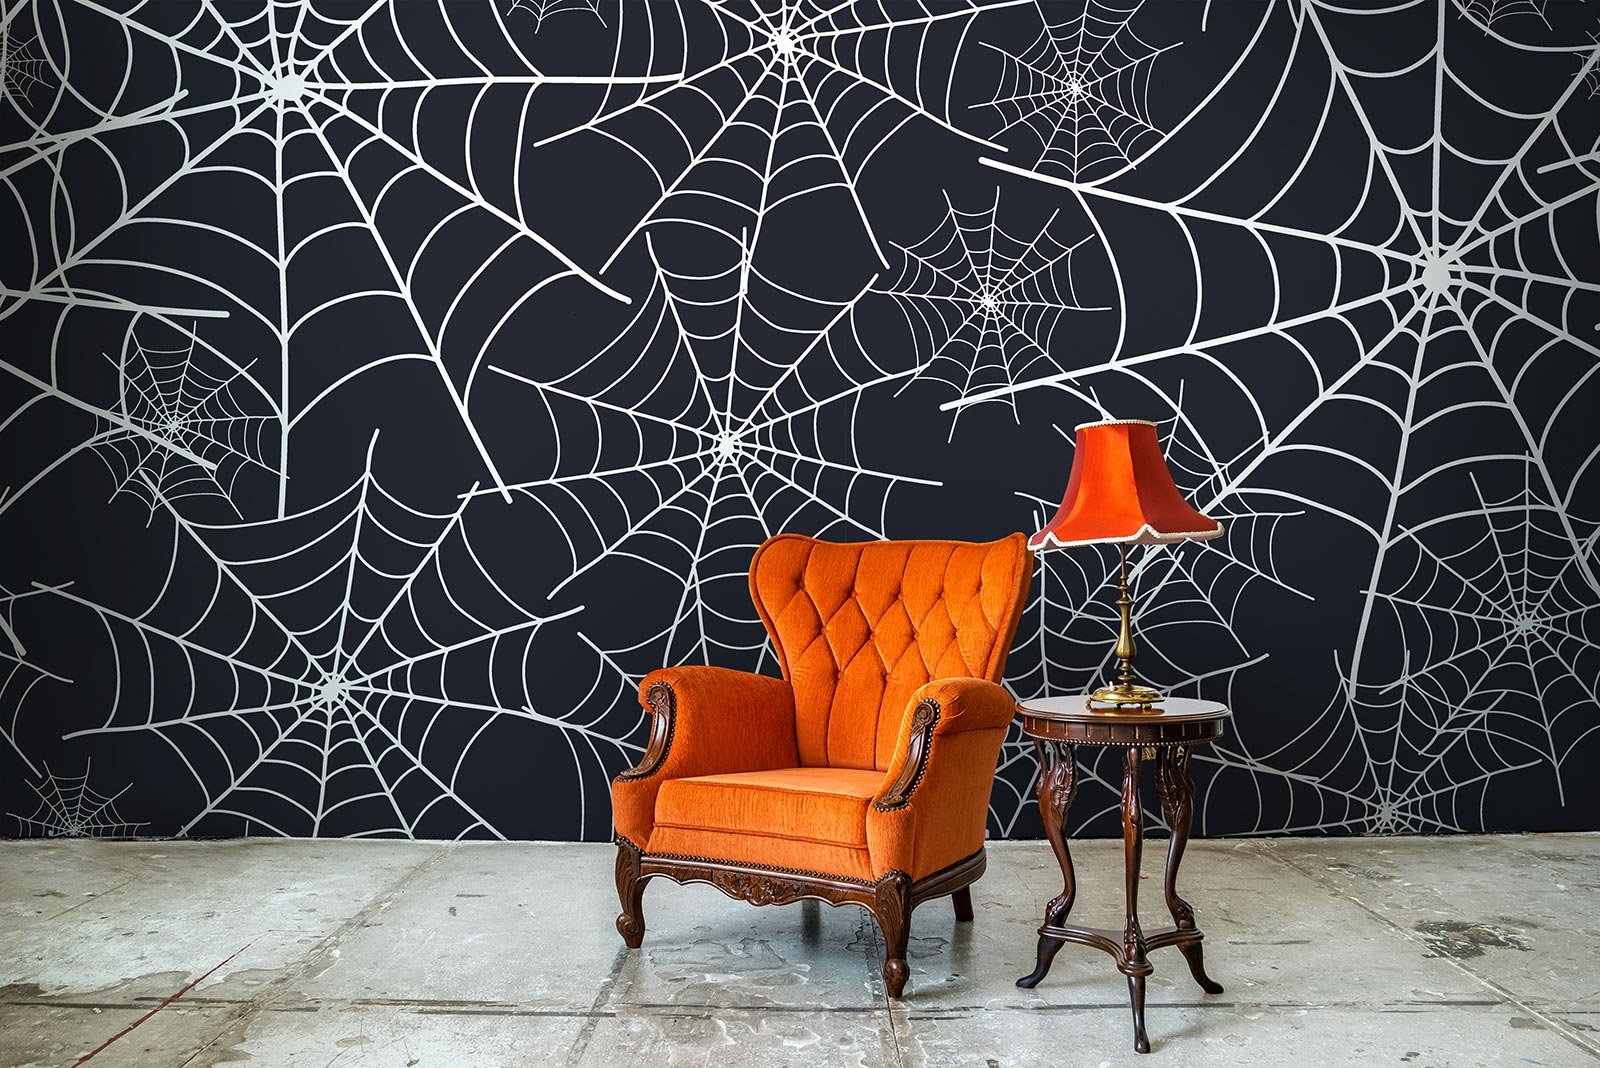 Bon Halloween Removable Wall Decor Spider Web Halloween Removable Wall Decor